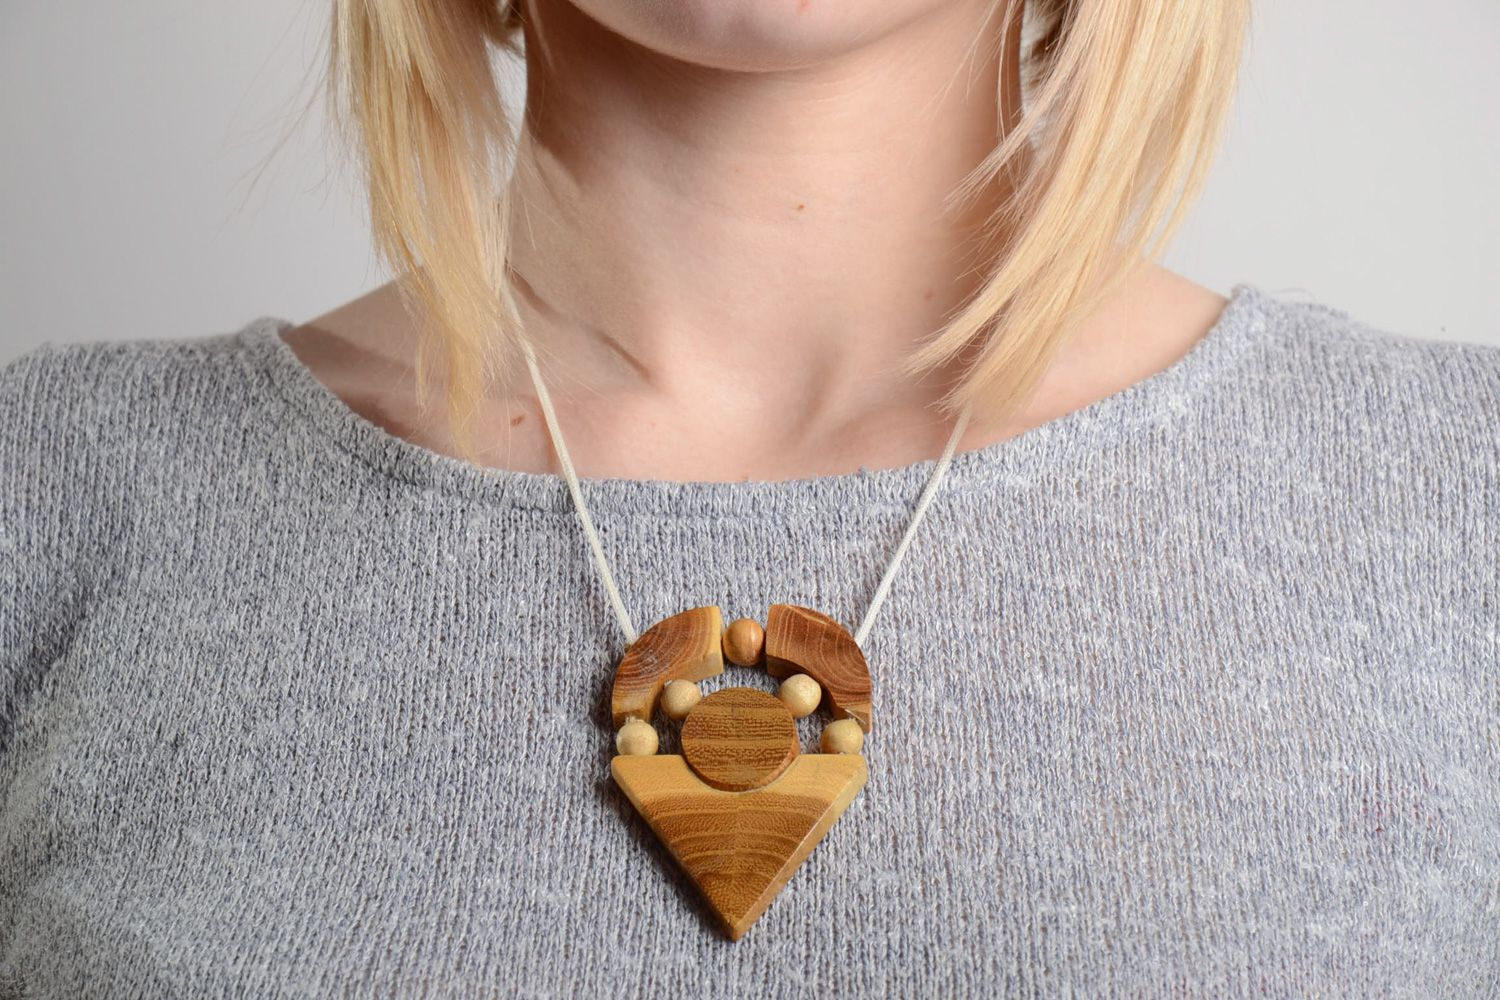 Handmade geometric neck pendant carved of wood and varnished on cord for ladies photo 2